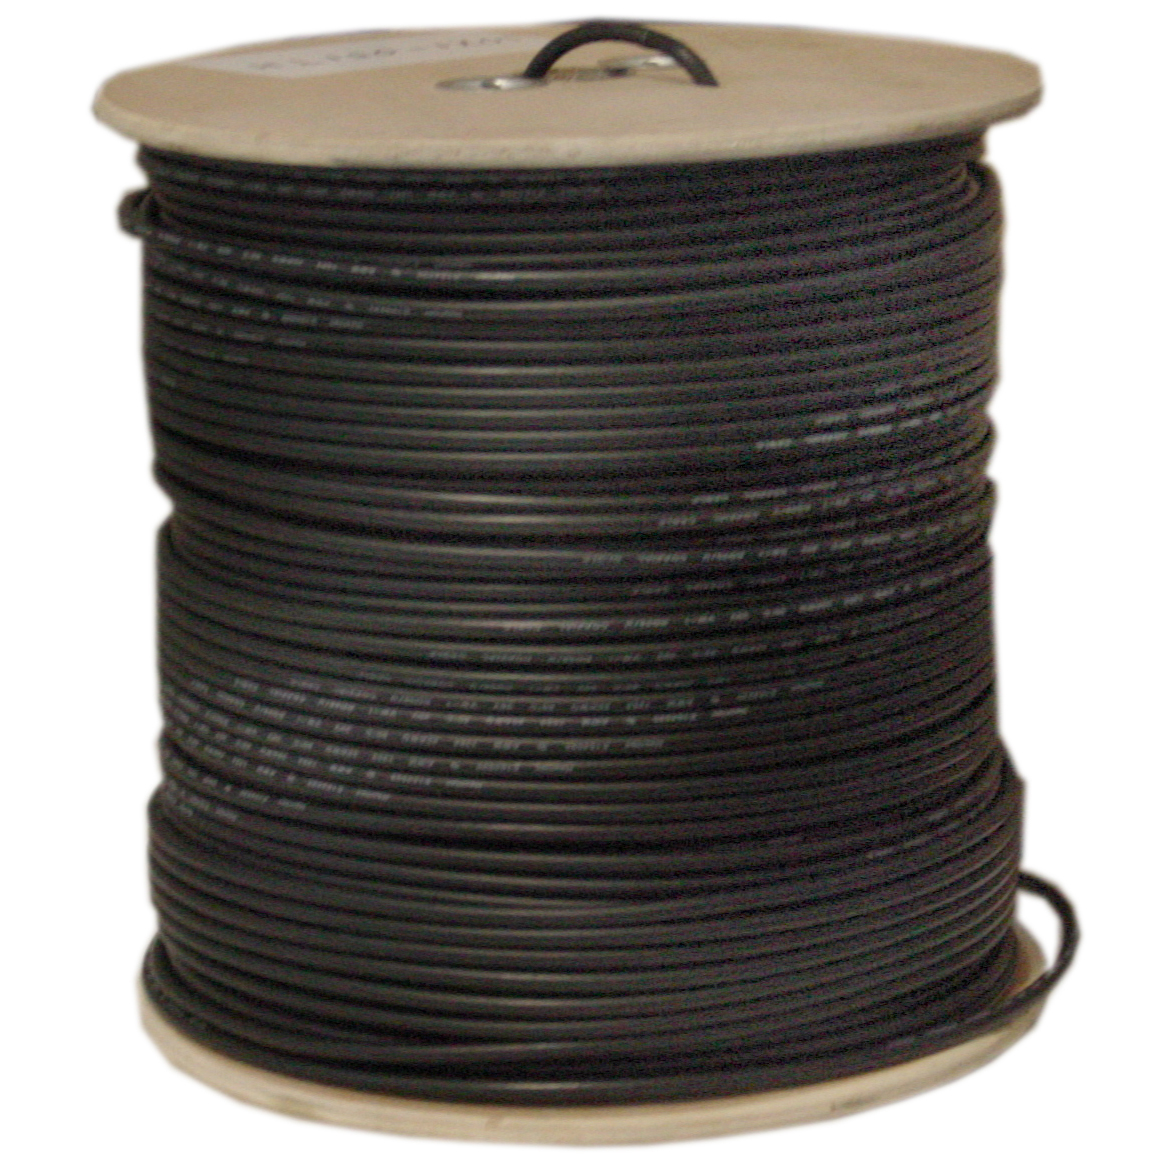 1000ft, Black Bulk RG58/AU Coaxial Cable, 20 AWG, Spool